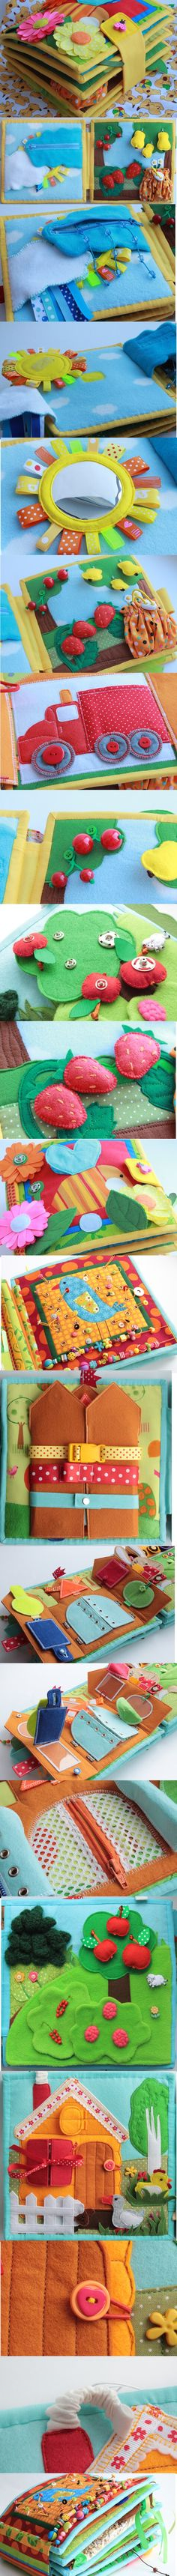 Quiet Book - Inspiration only Diy Quiet Books, Baby Quiet Book, Felt Quiet Books, Baby Crafts, Felt Crafts, Diy And Crafts, Sensory Book, Fidget Quilt, Quiet Book Patterns